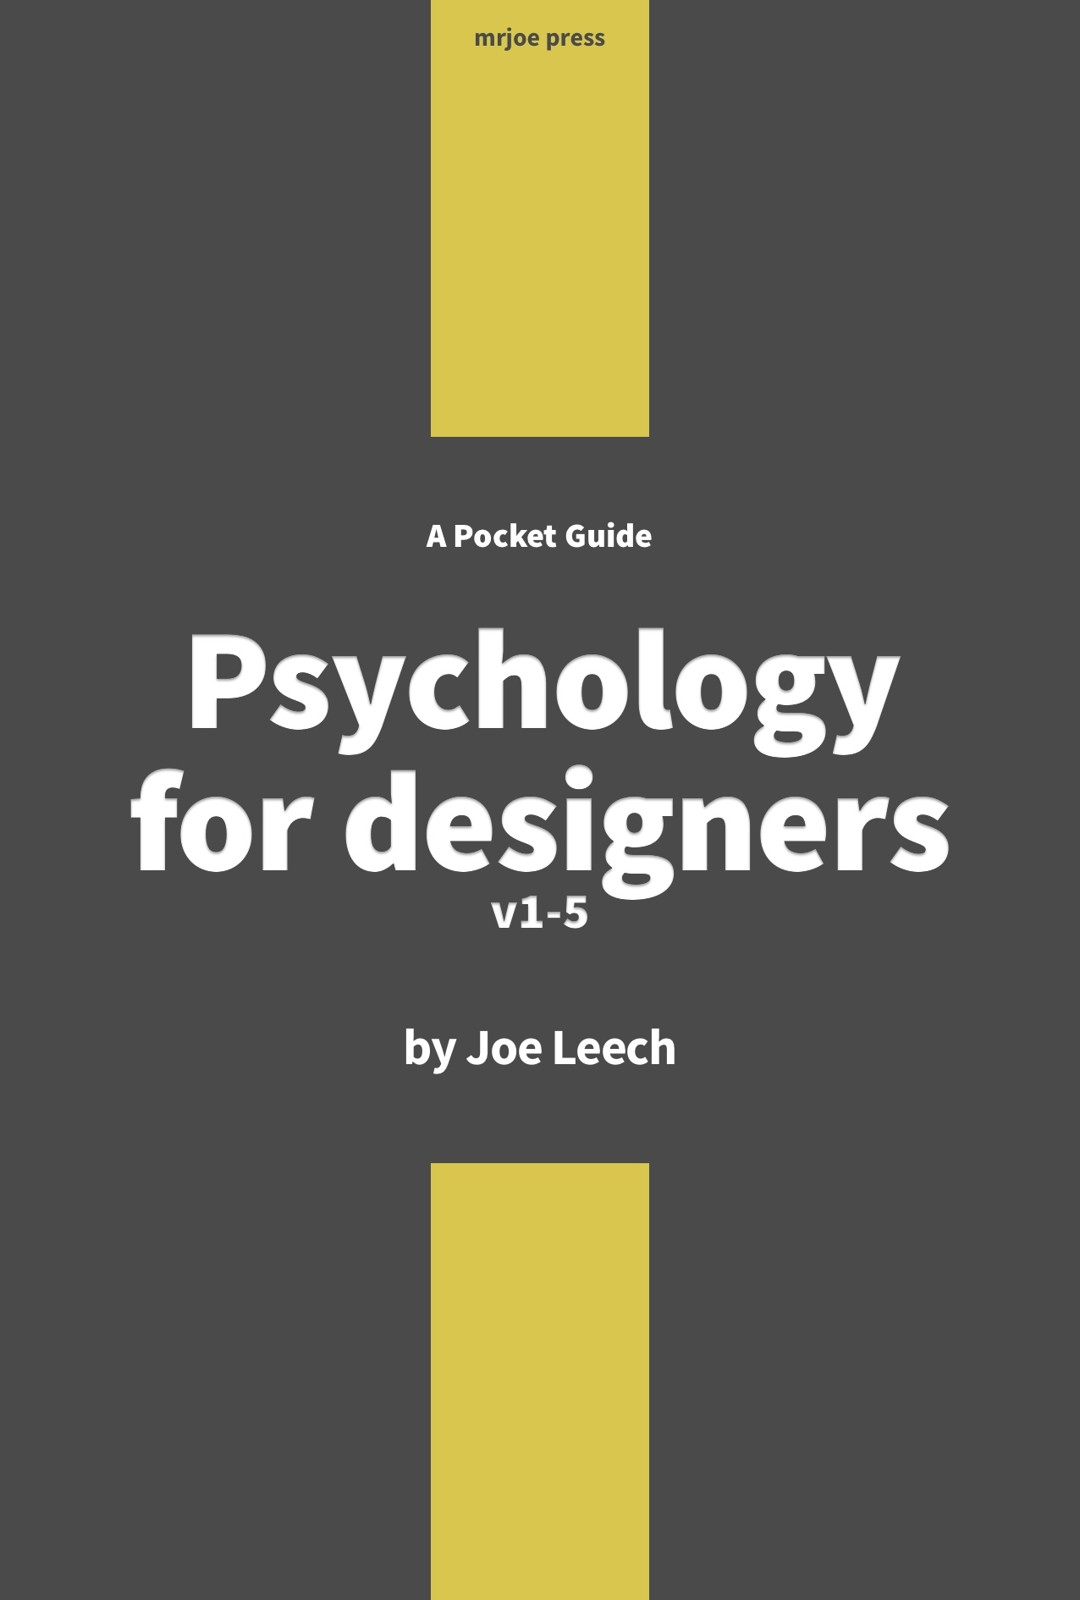 Psychology for Designers by Joe Leech